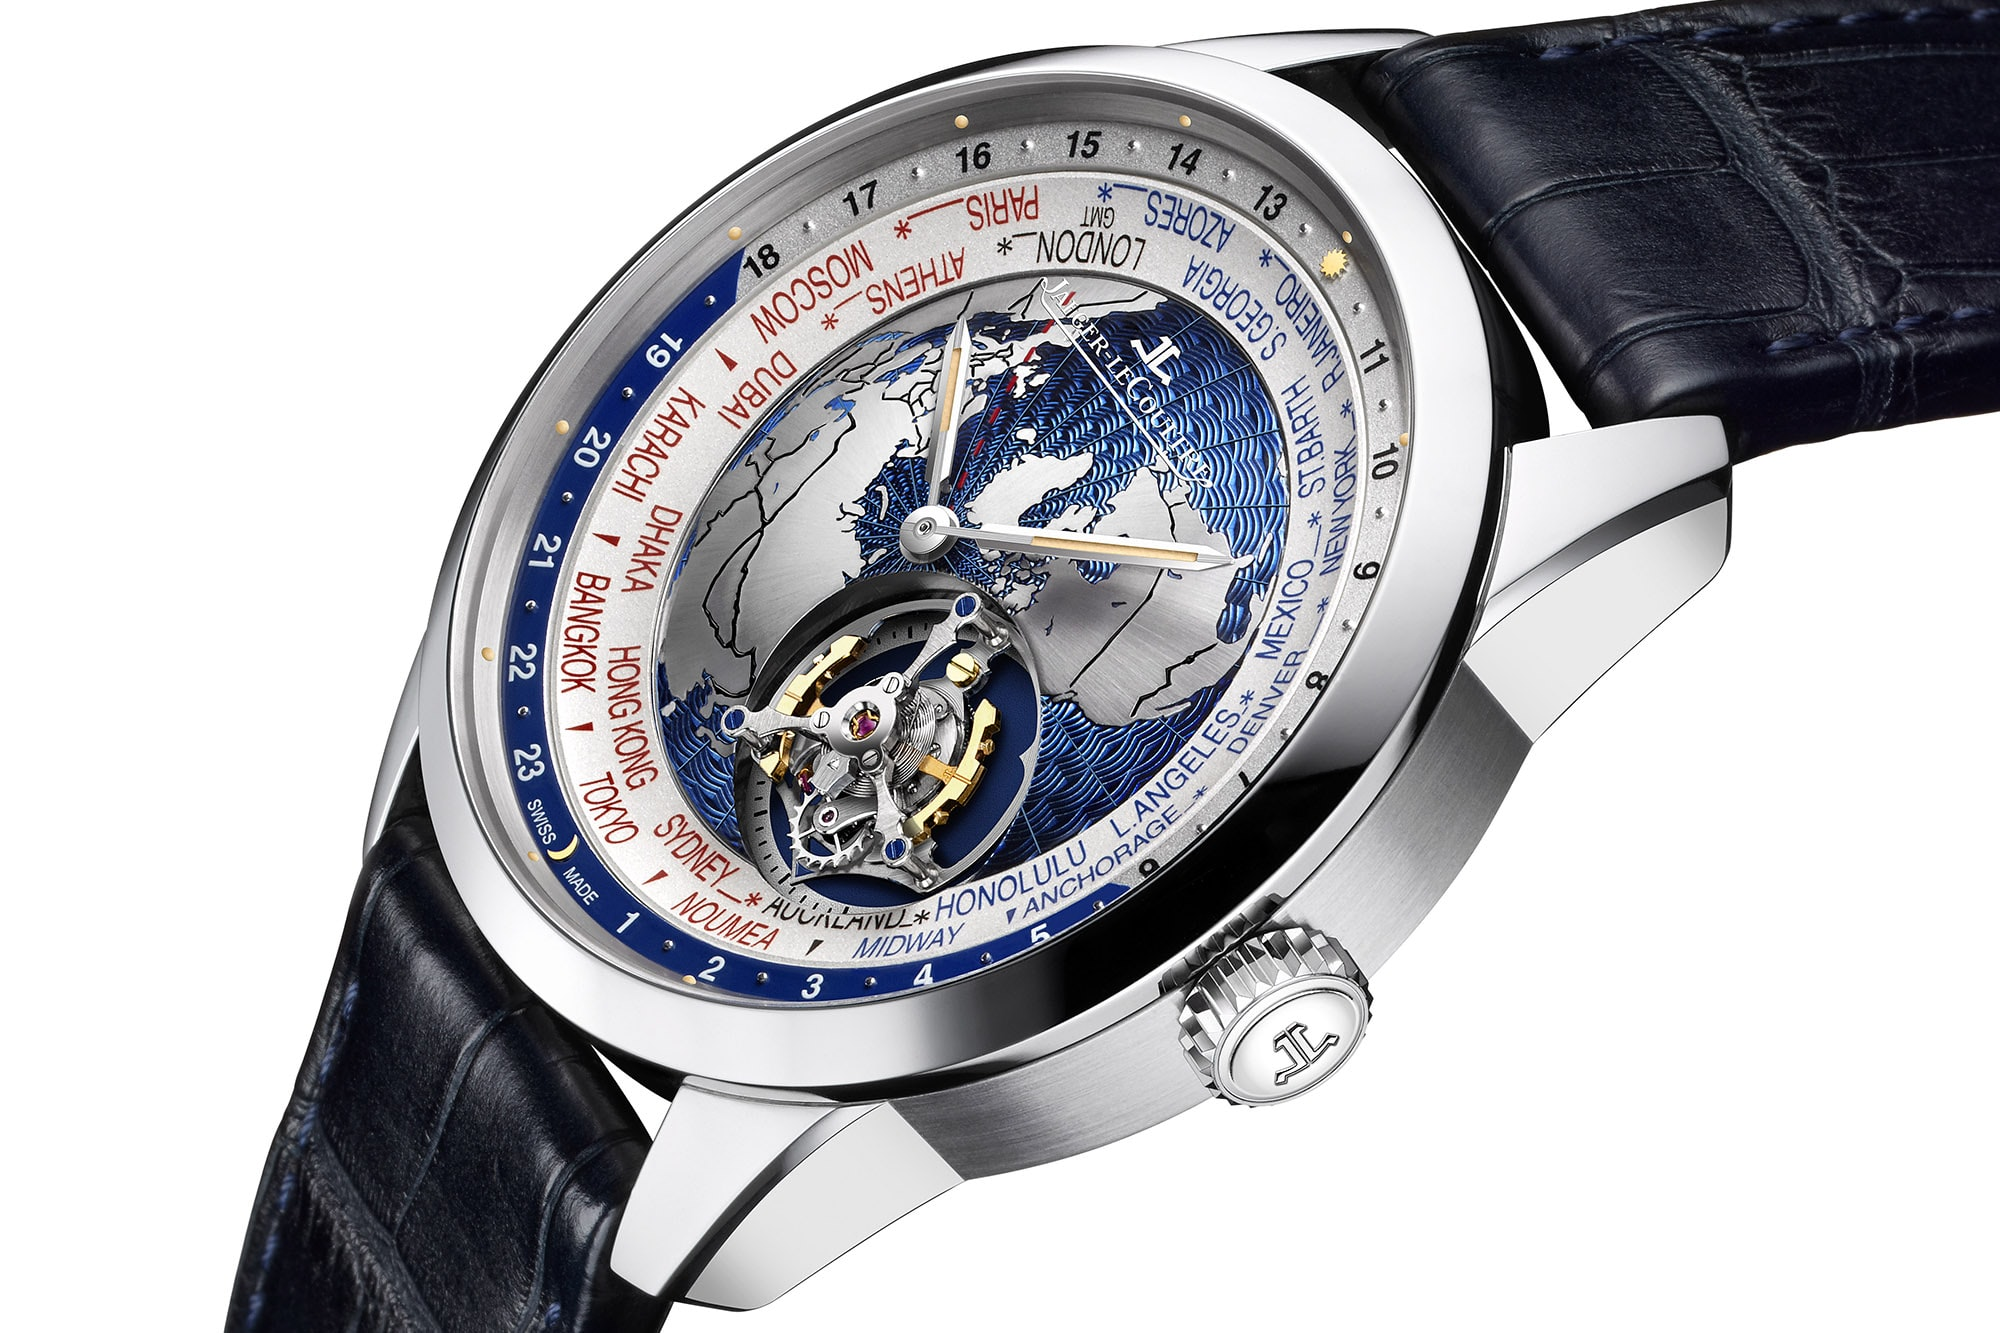 Introducing: The Jaeger-LeCoultre Geophysic Tourbillon Universal Time Introducing: The Jaeger-LeCoultre Geophysic Tourbillon Universal Time 555